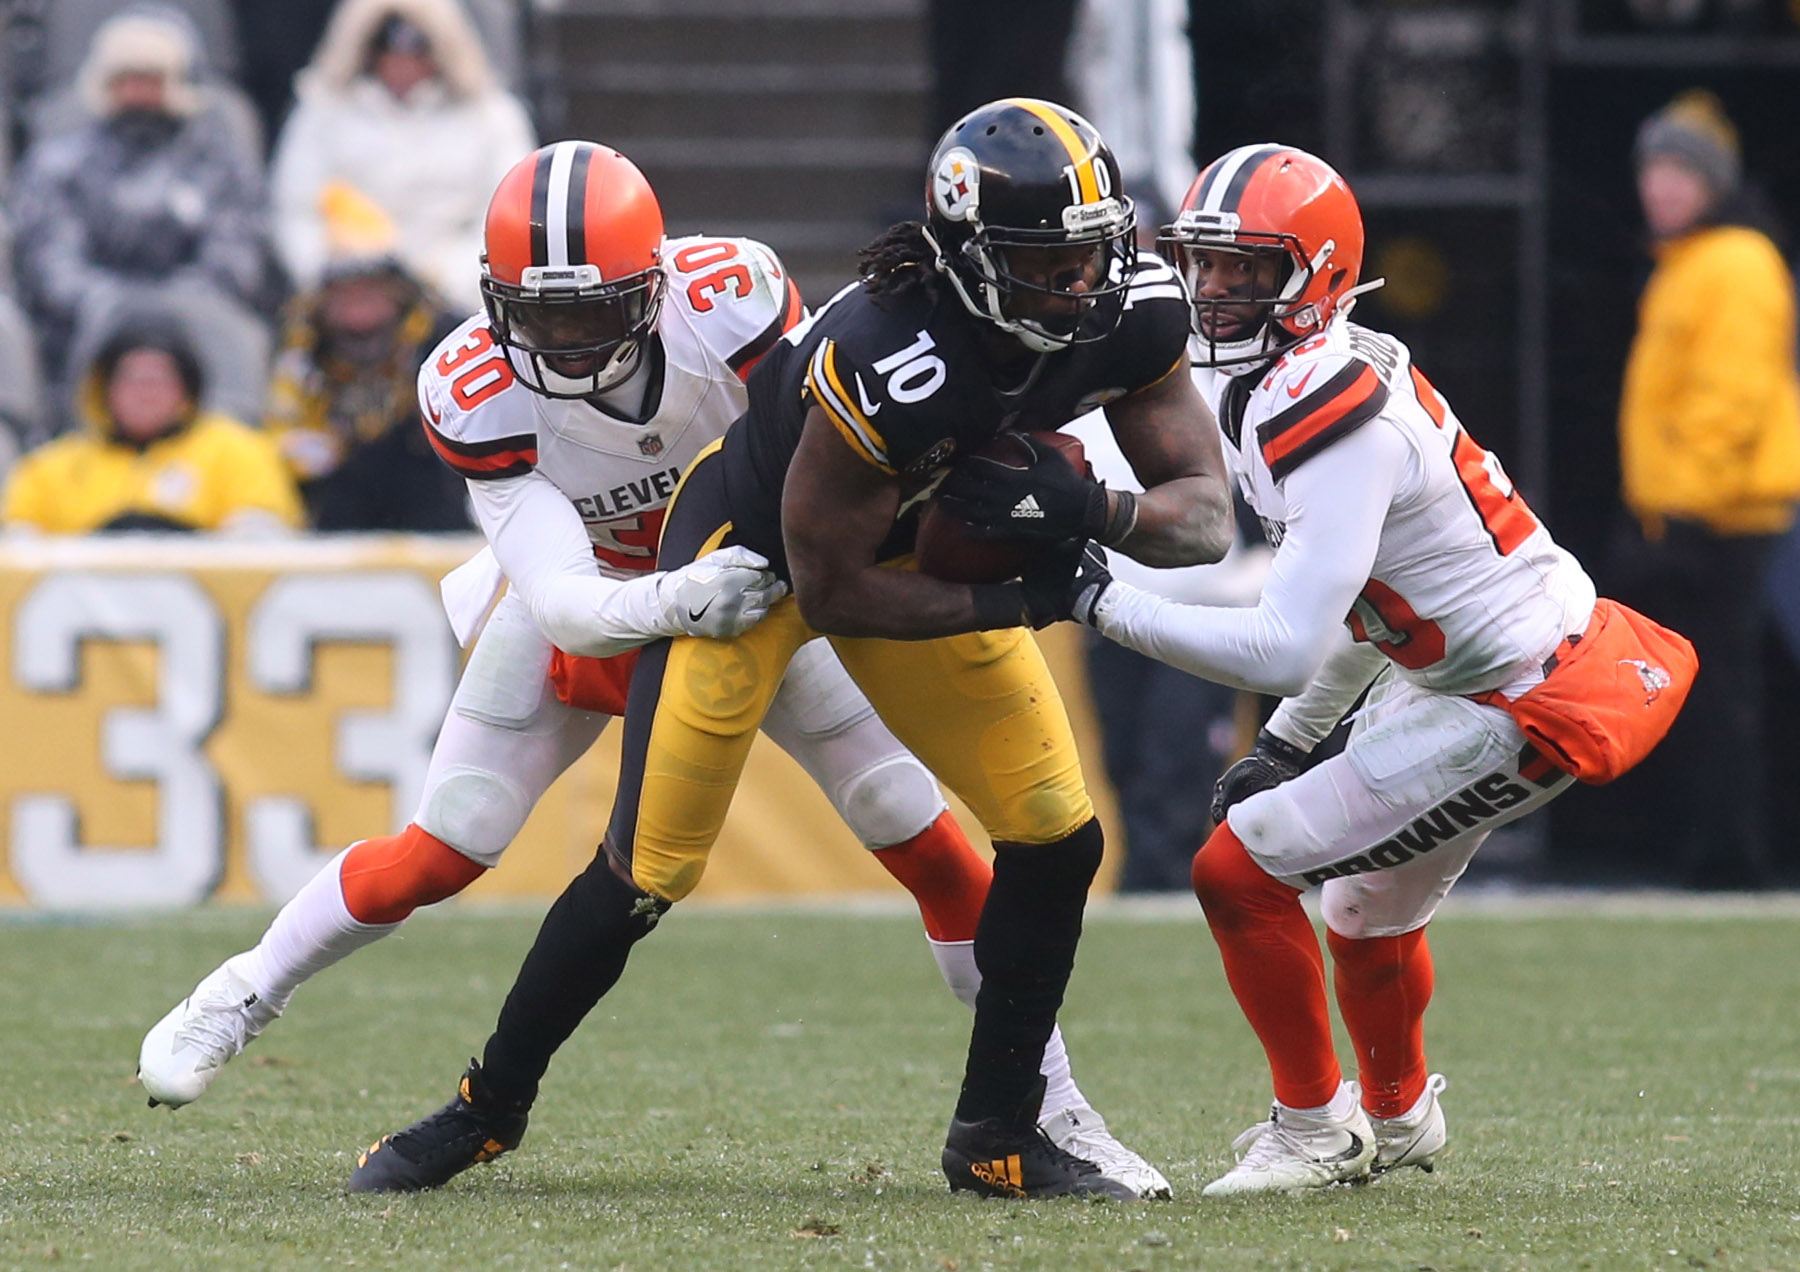 Will Steelersu0027 Trade Of Martavis Bryant Be A Case Of Addition By  Subtraction?